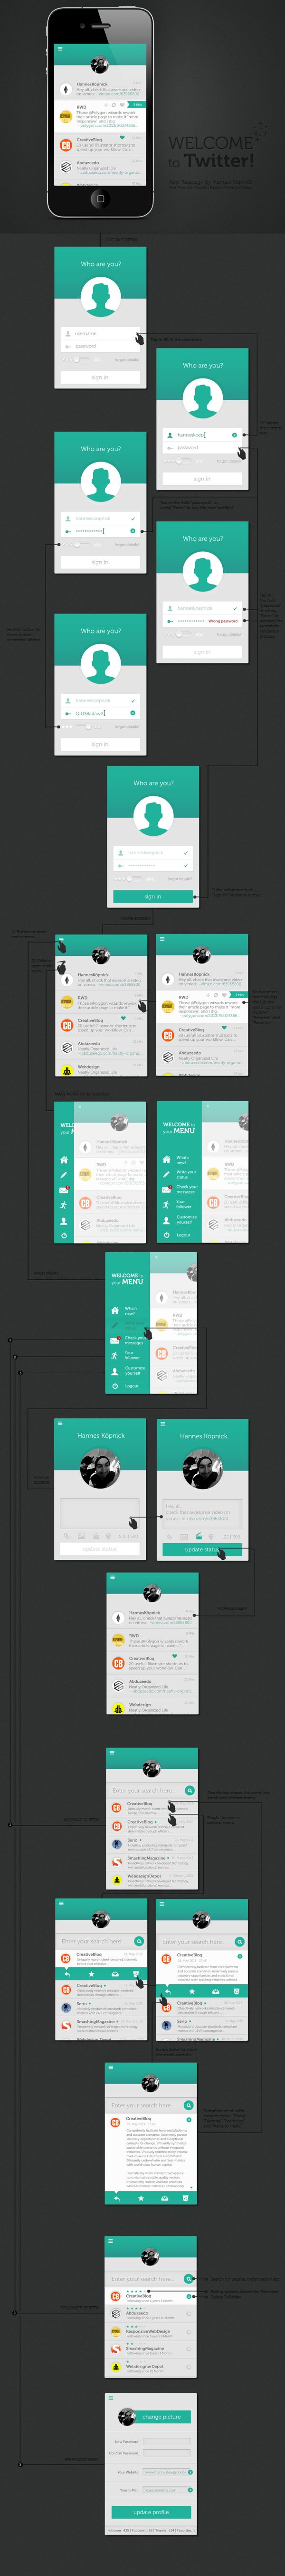 Redesign Twitter App by Graphek , via Behance